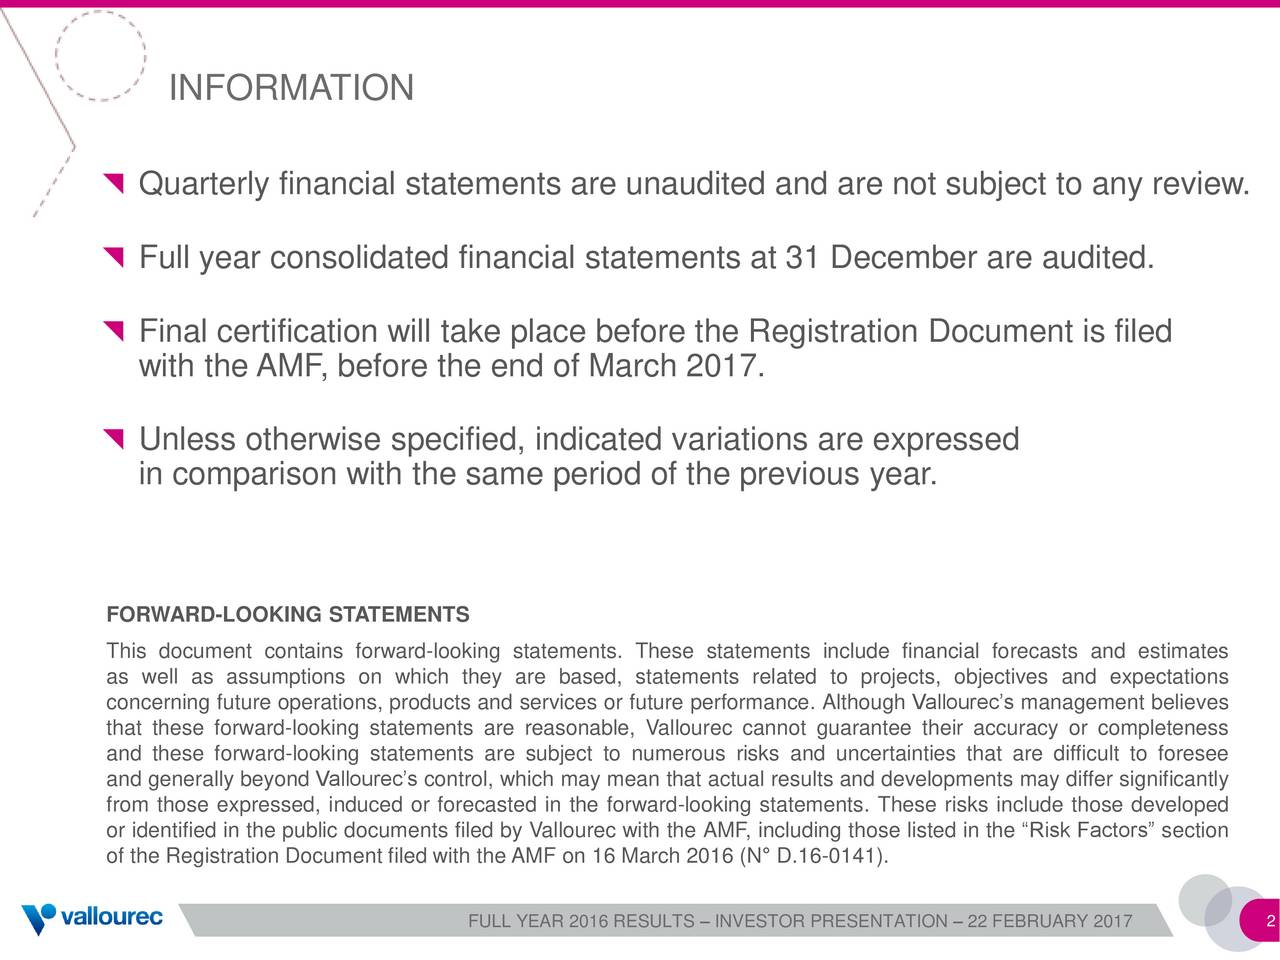 Quarterly financial statements are unaudited and are not subject to any review. Full year consolidated financial statements at 31 December are audited. Final certification will take place before the Registration Document is filed with the AMF, before the end of March 2017. Unless otherwise specified, indicated variations are expressed in comparison with the same period of the previous year. FORWARD-LOOKING STATEMENTS This document contains forward-looking statements. These statements include financial forecasts and estimates as well as assumptions on which they are based, statements related to projects, objectives and expectations concerning future operations, products and services or future performance. Although Vallourecs management believes that these forward-looking statements are reasonable, Vallourec cannot guarantee their accuracy or completeness and these forward-looking statements are subject to numerous risks and uncertainties that are difficult to foresee and generally beyond Vallourecs control, which may mean that actual results and developments may differ significantly from those expressed, induced or forecasted in the forward-looking statements. These risks include those developed or identified in the public documents filed by Vallourec with the AMF, including those listed in the Risk Factors section of the Registration Document filed with the AMF on 16 March 2016 (N D.16-0141). FULL YEAR 2016 RESULTS  INVESTOR PRESENTATION  22 FEBRUARY 2017